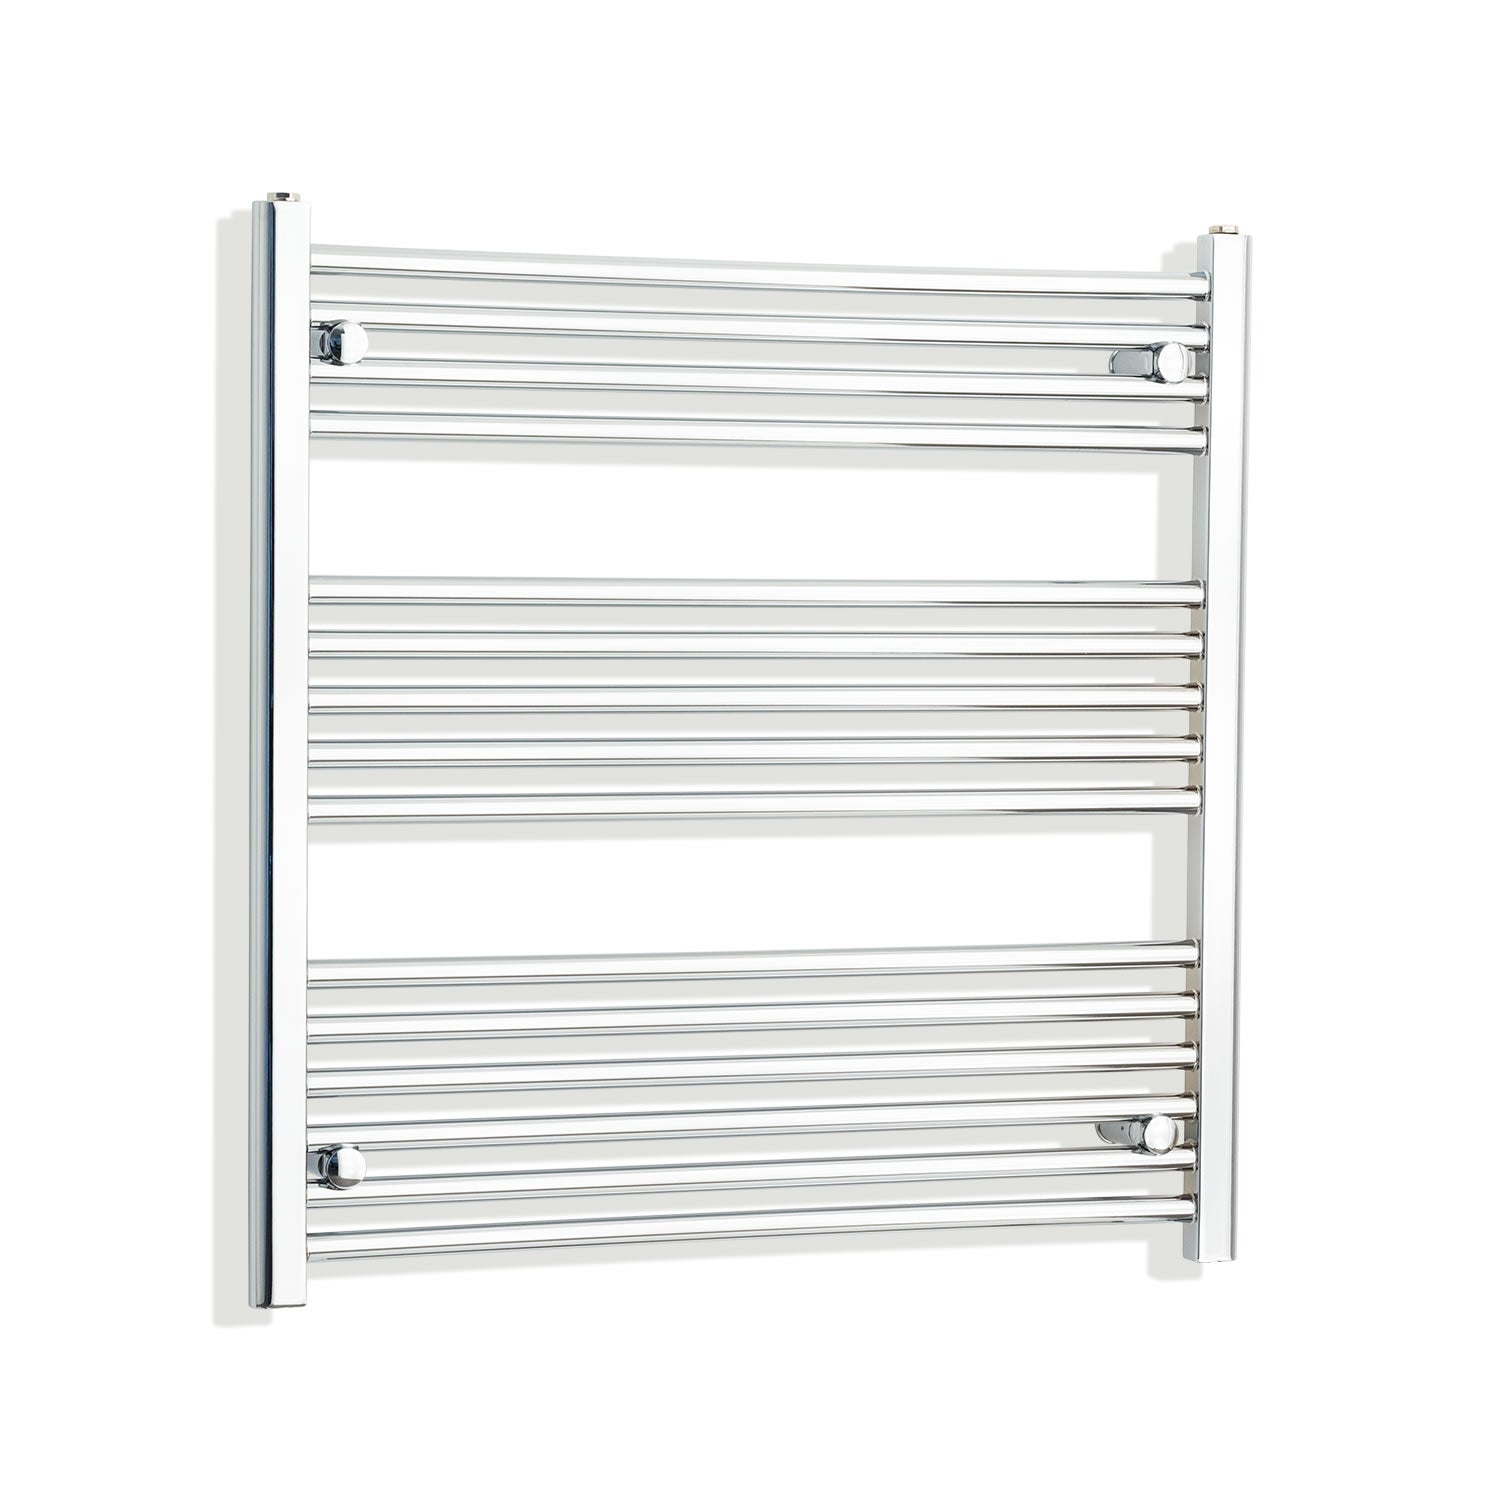 900mm Wide 800mm High Chrome Towel Rail Radiator